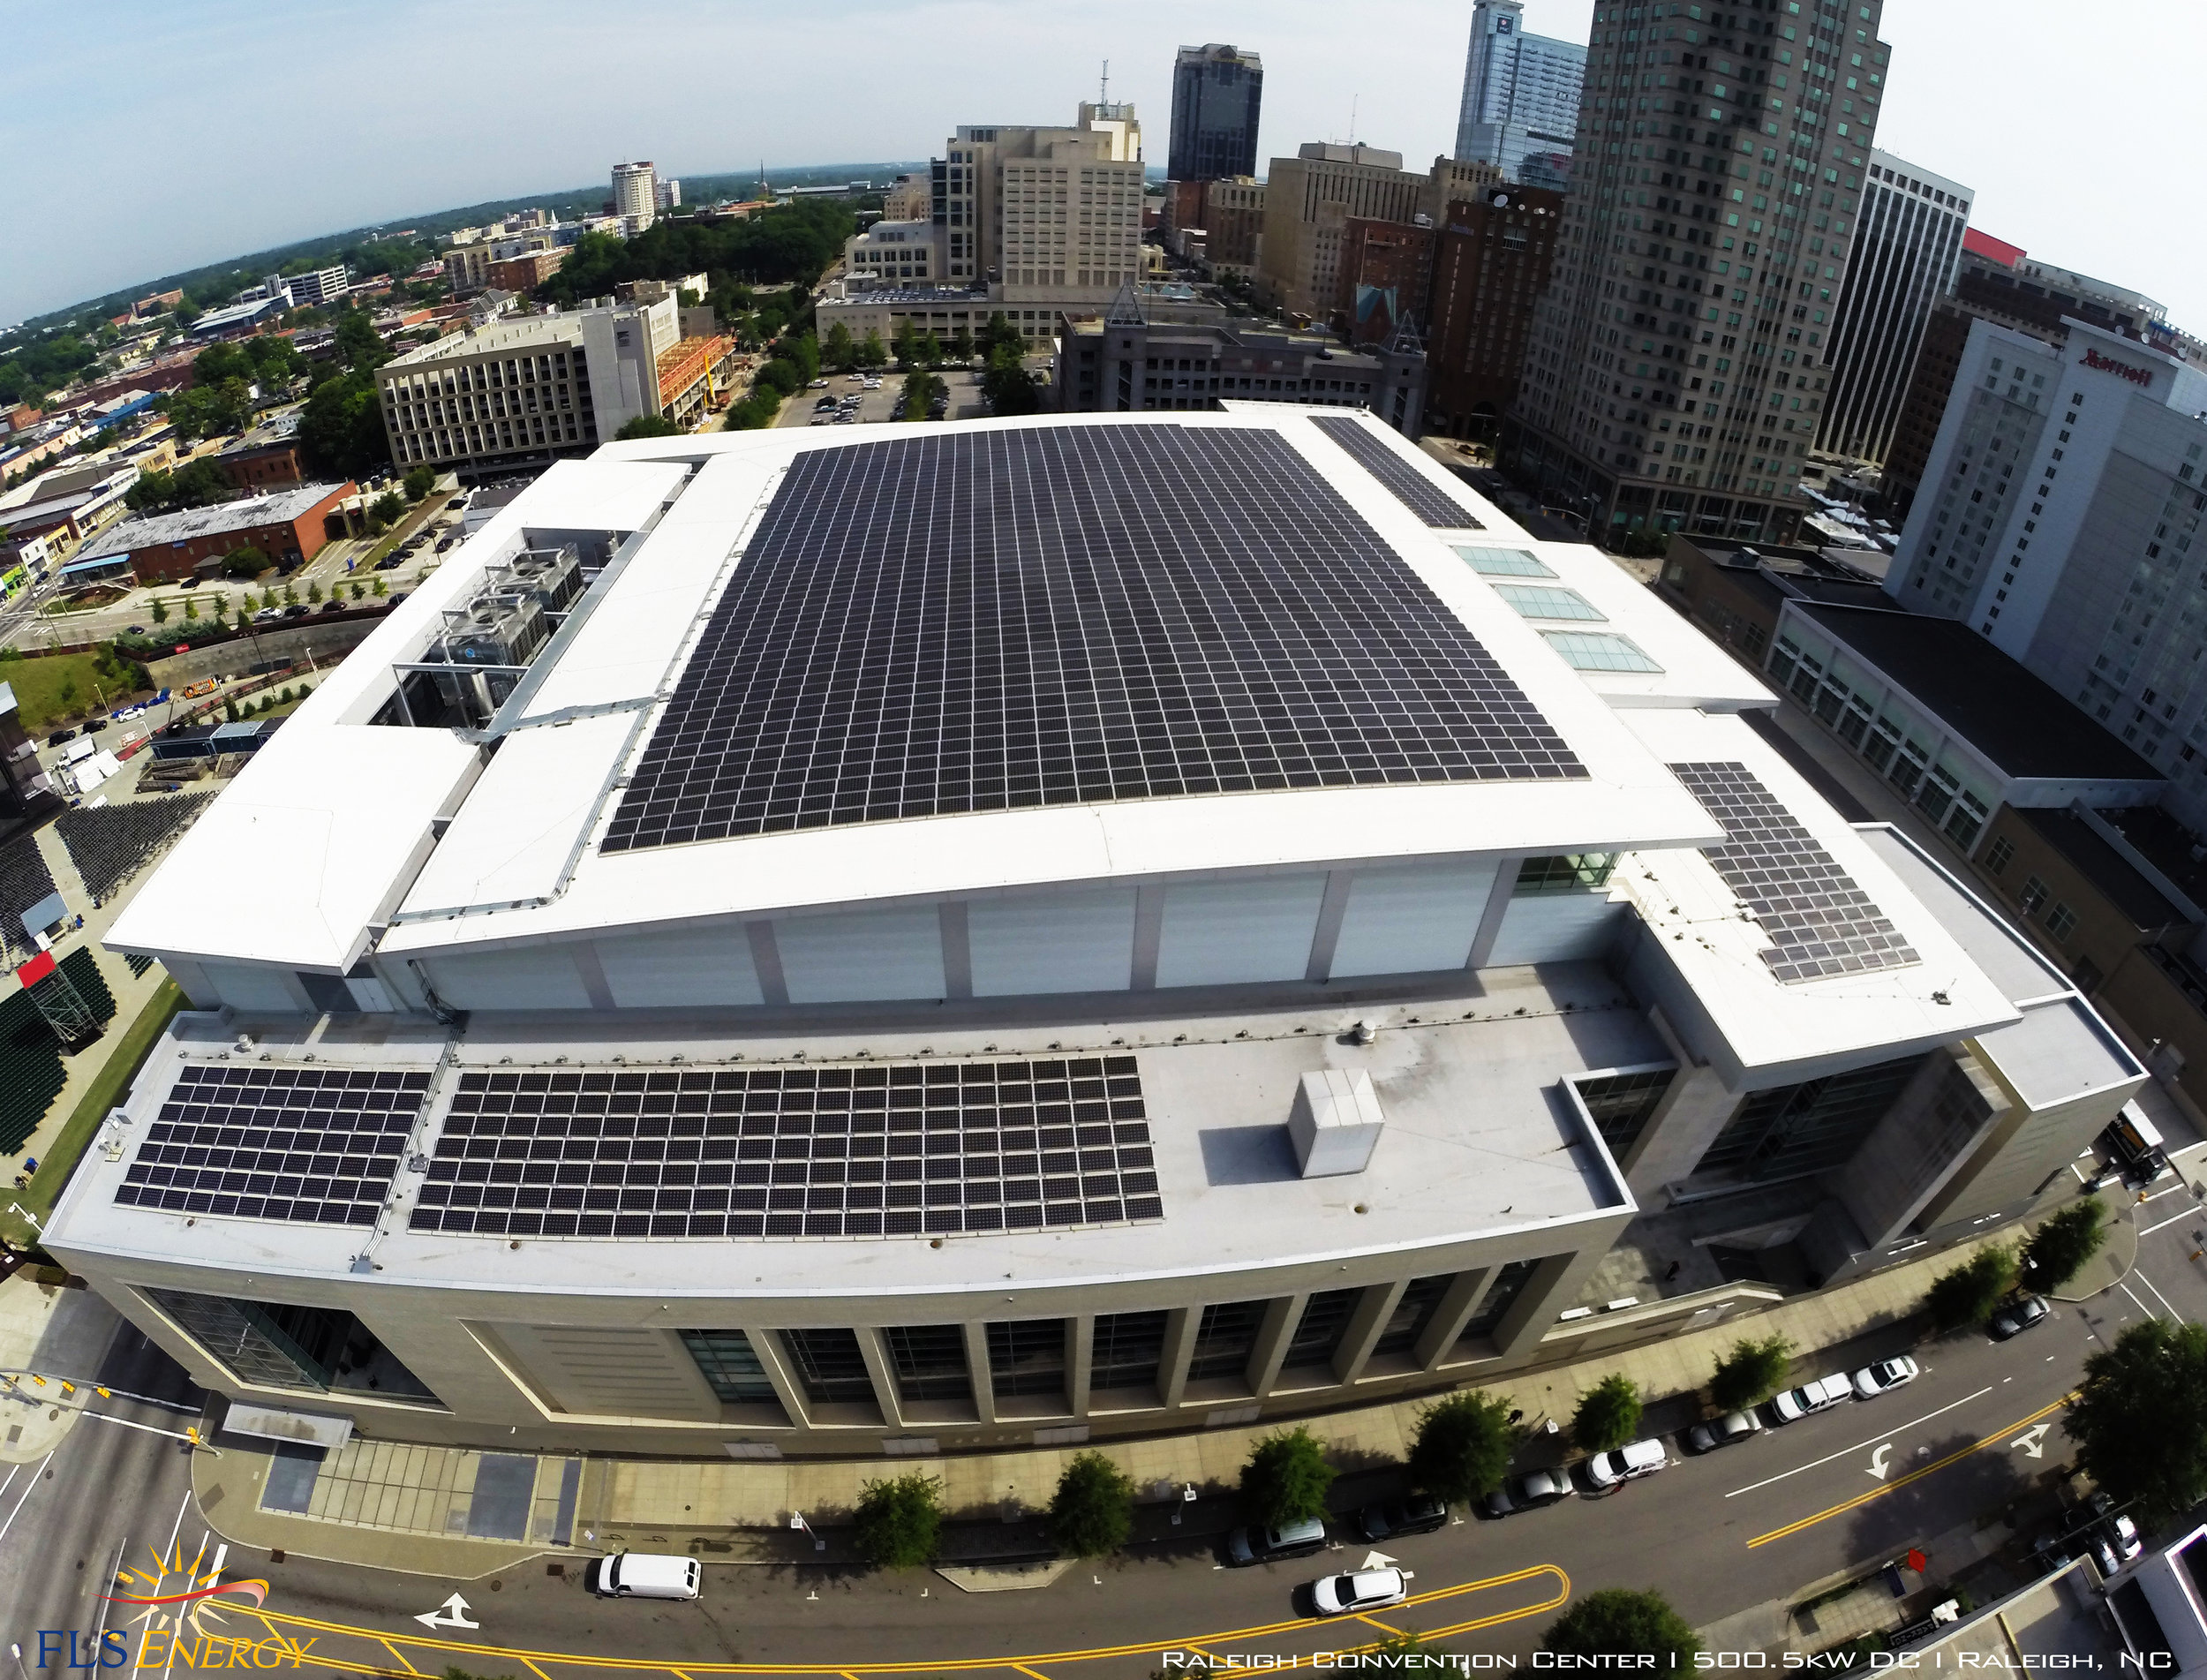 Raleigh Convention Center - The Convention Center project was developed in 2012 without requiring any capital investment from the city of Raleigh. Instead, the City simply leased their roof space for the solar installation. Solar investors provided the financing for the installation and the power is sold to Duke Energy. This a now a common model for development of solar farm projects and commercial projects.photo courtesy of FLS Energy